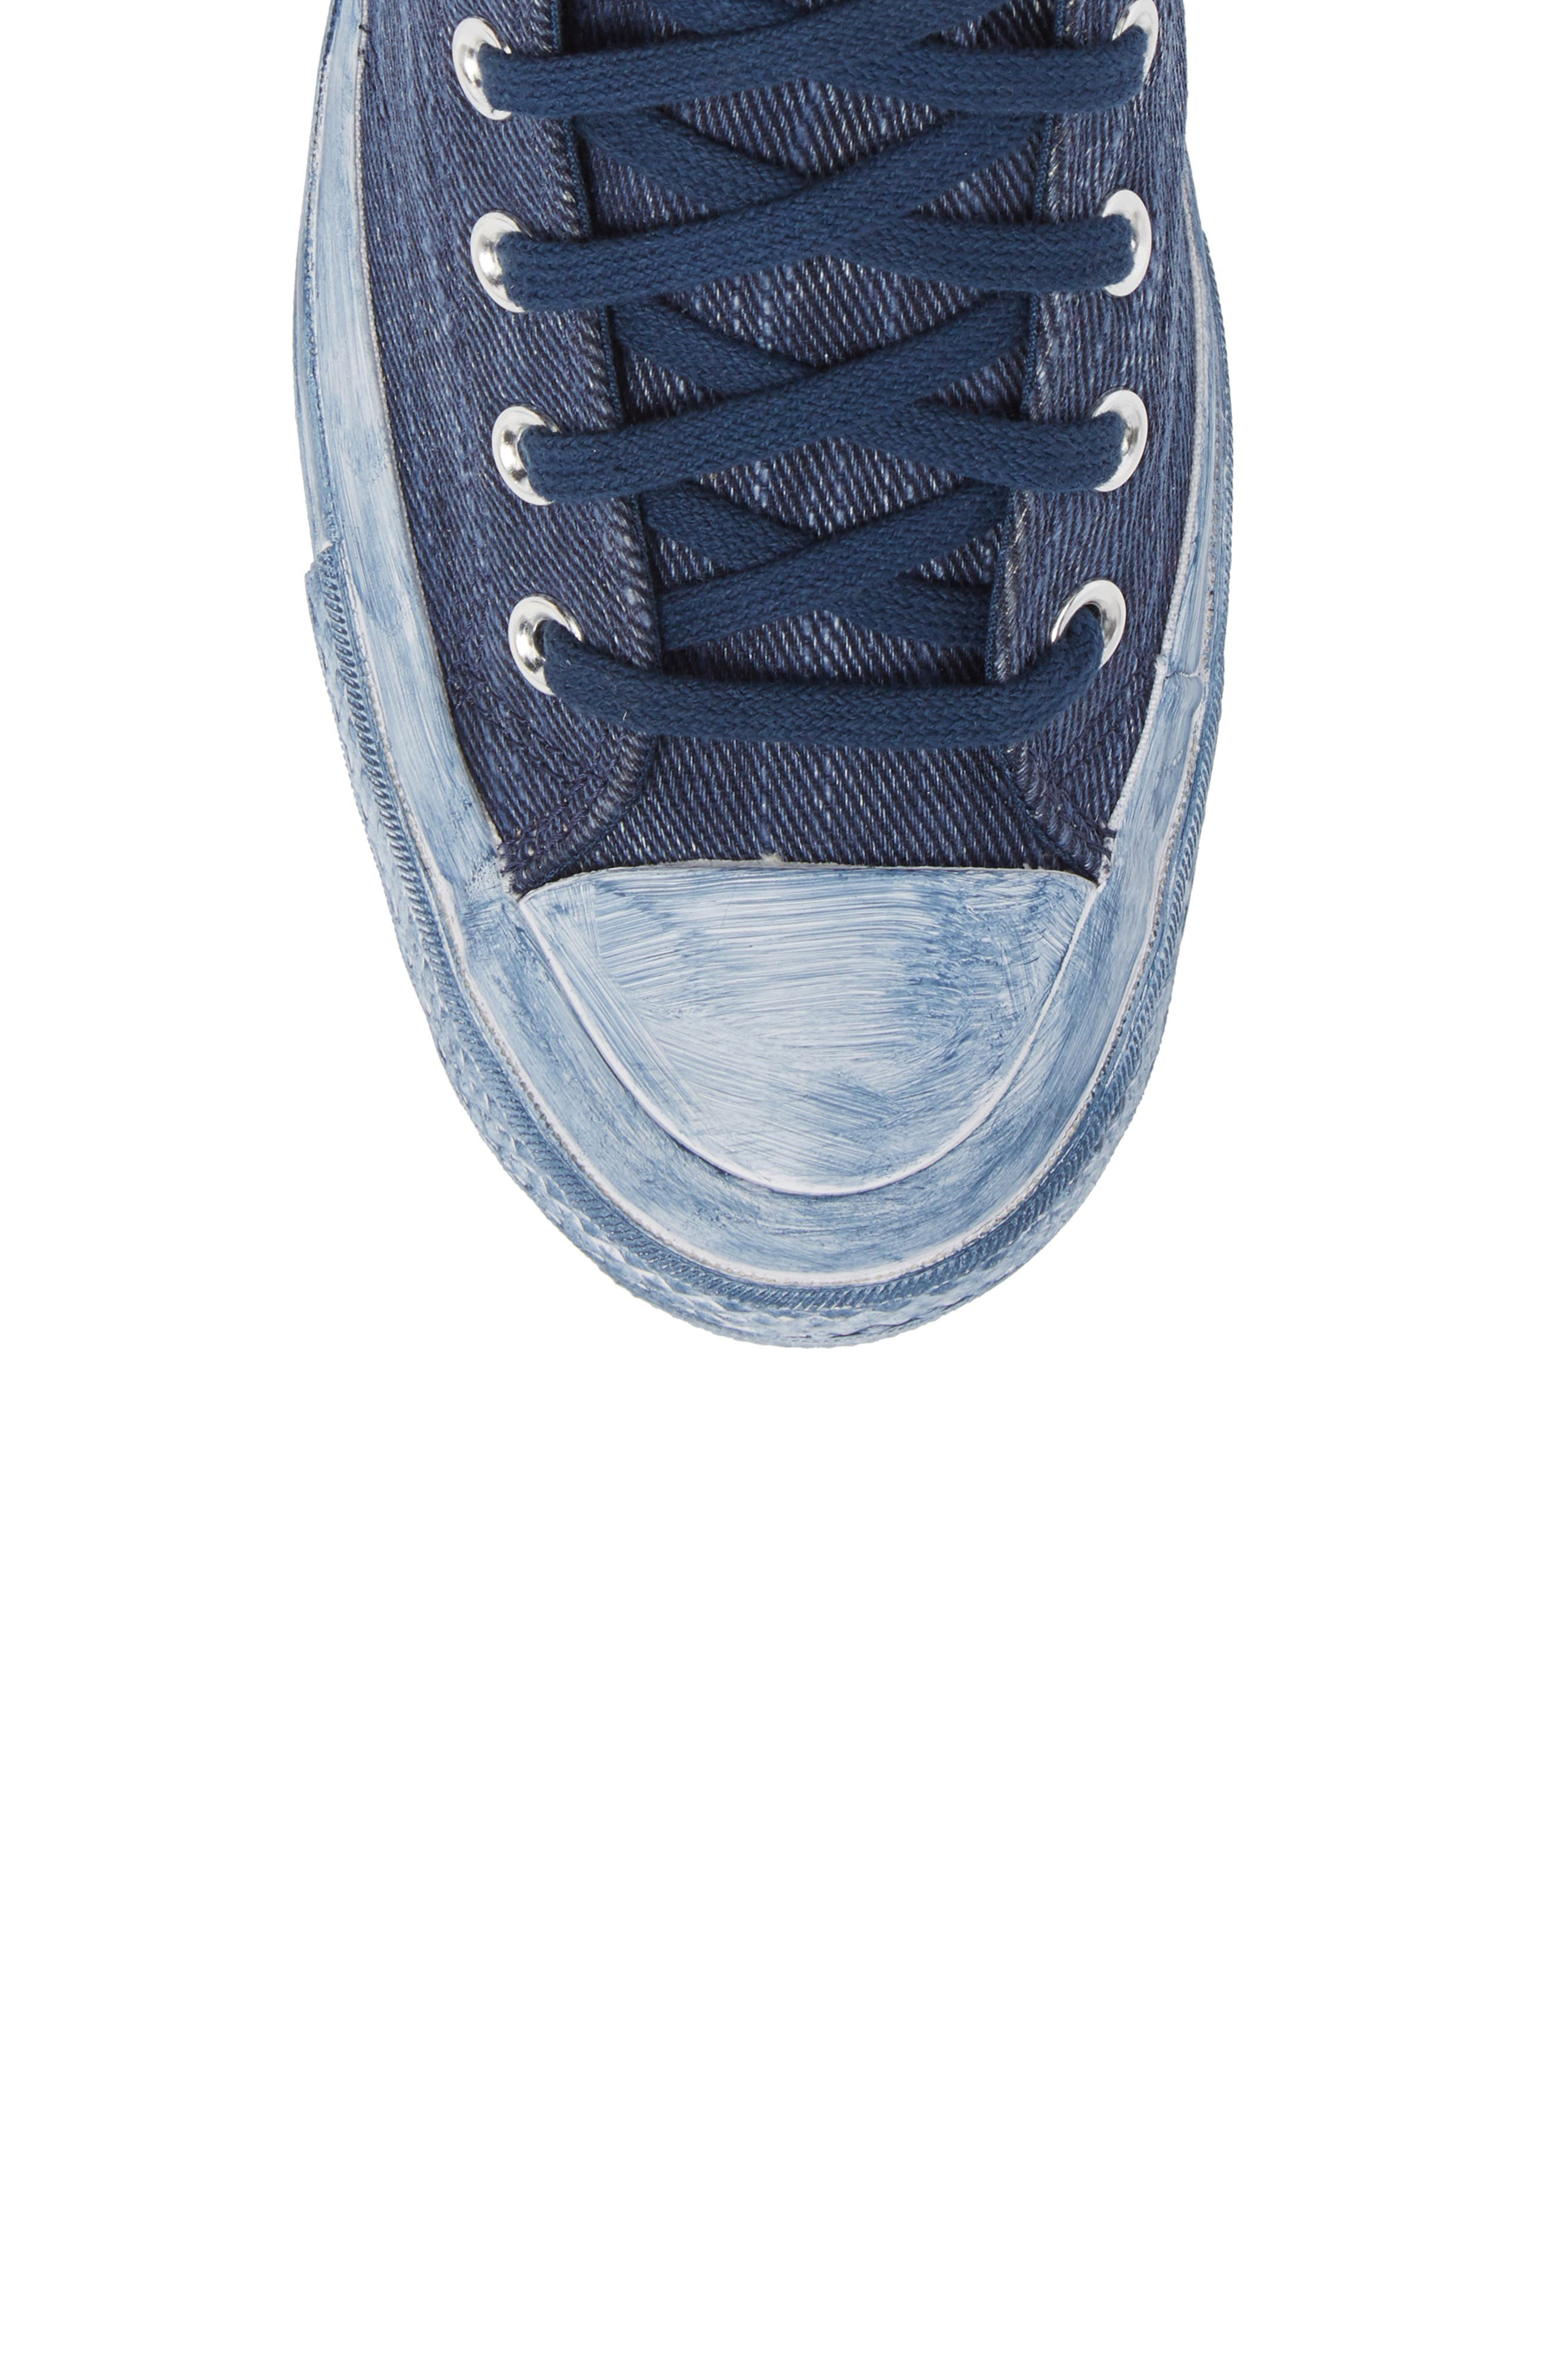 Chuck Taylor<sup>®</sup> All Star<sup>®</sup> Overdyed Linen High Top Sneaker,                             Alternate thumbnail 5, color,                             Navy